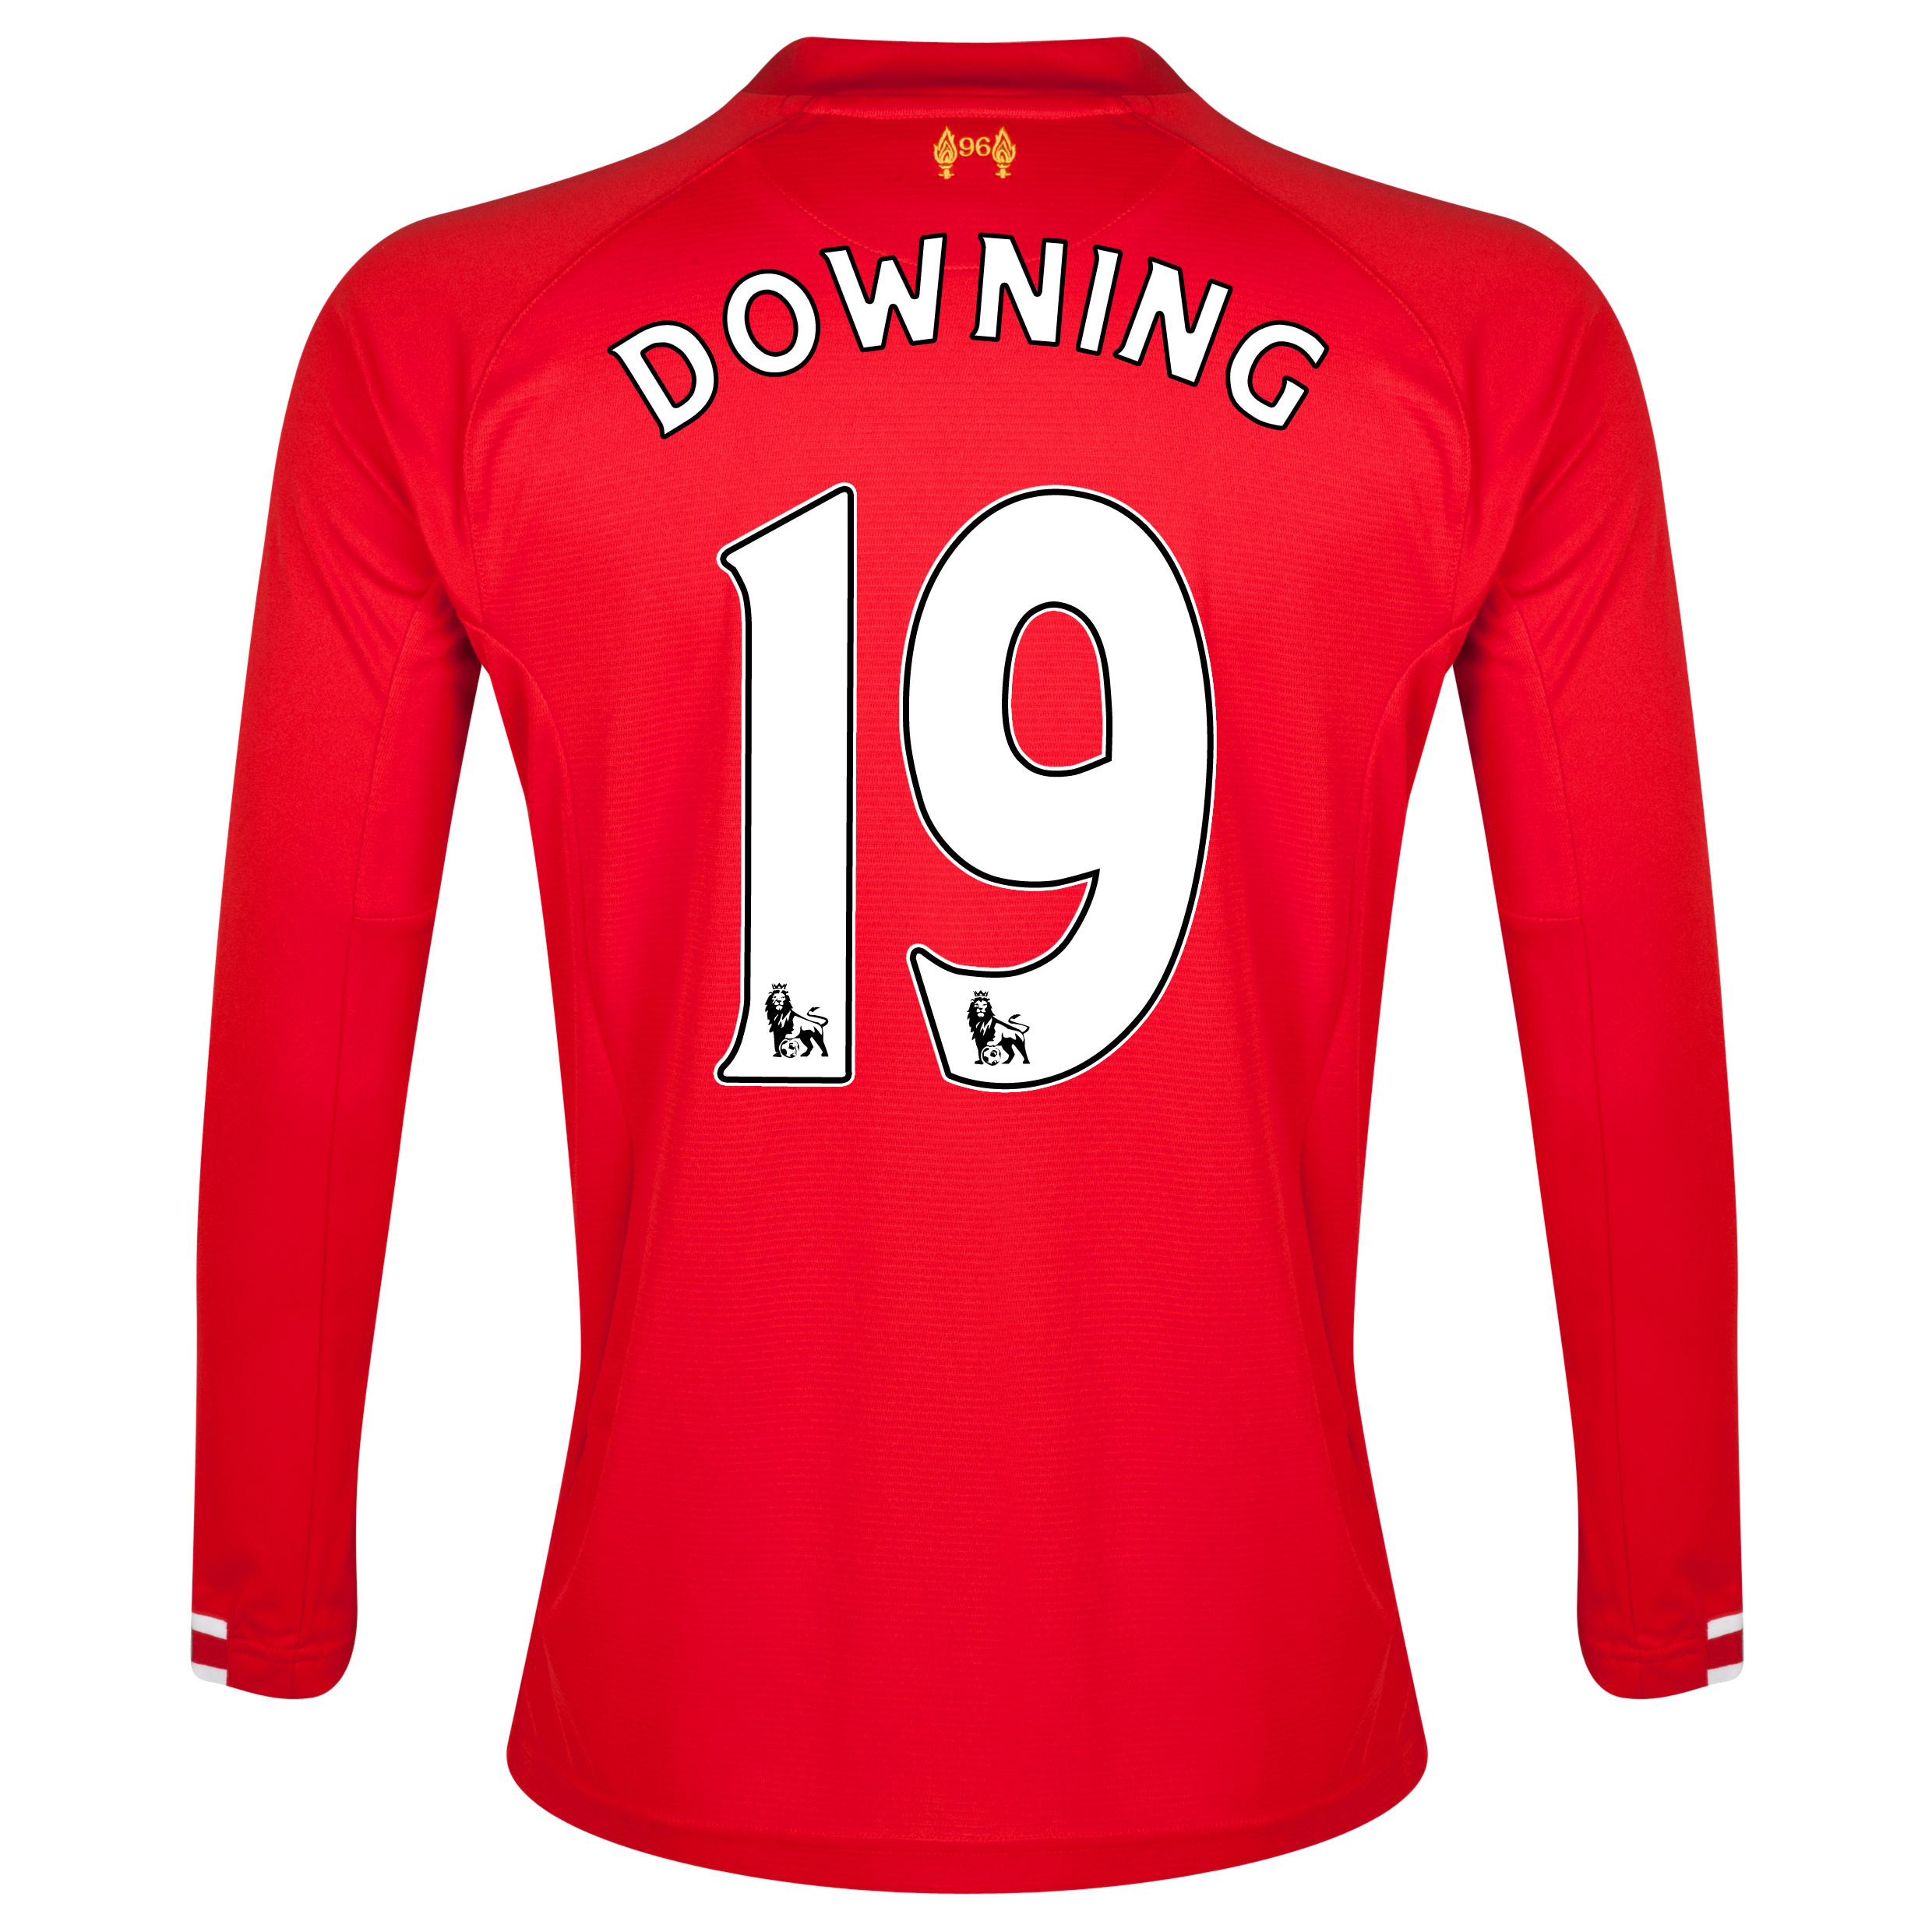 Liverpool Home Shirt 2013/14 Long sleeve with Downing 19 printing